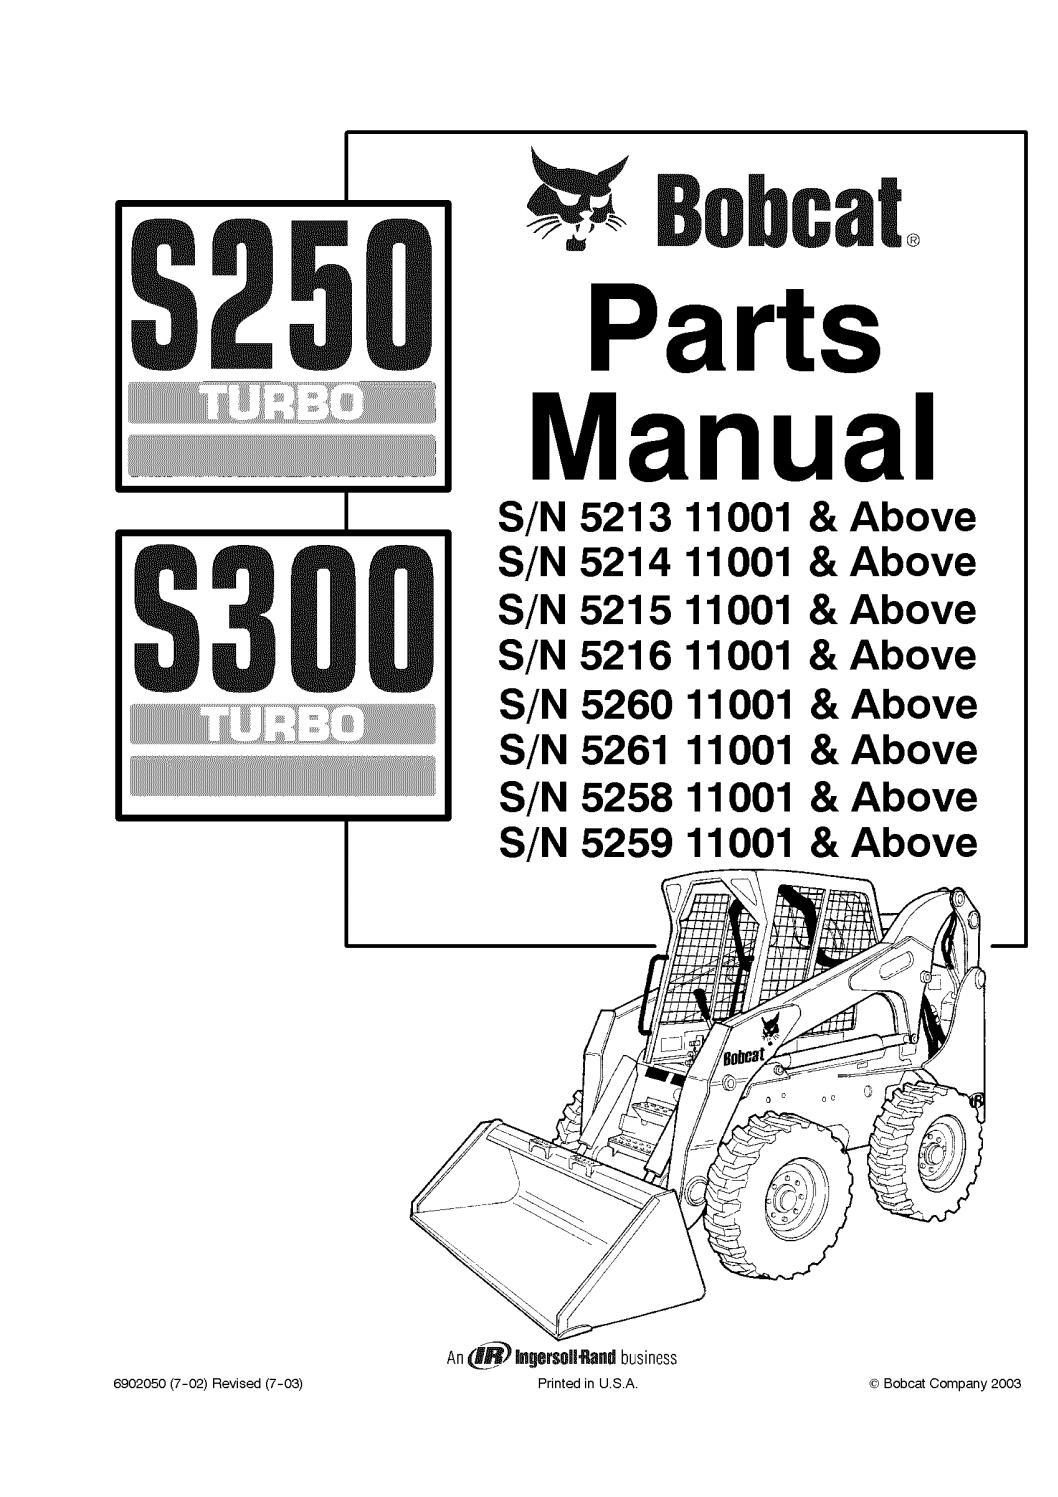 hight resolution of 2003 bobcat s250 parts diagrams wiring library diagram a4 bobcat s300 turbo replace bobcat s250 s300